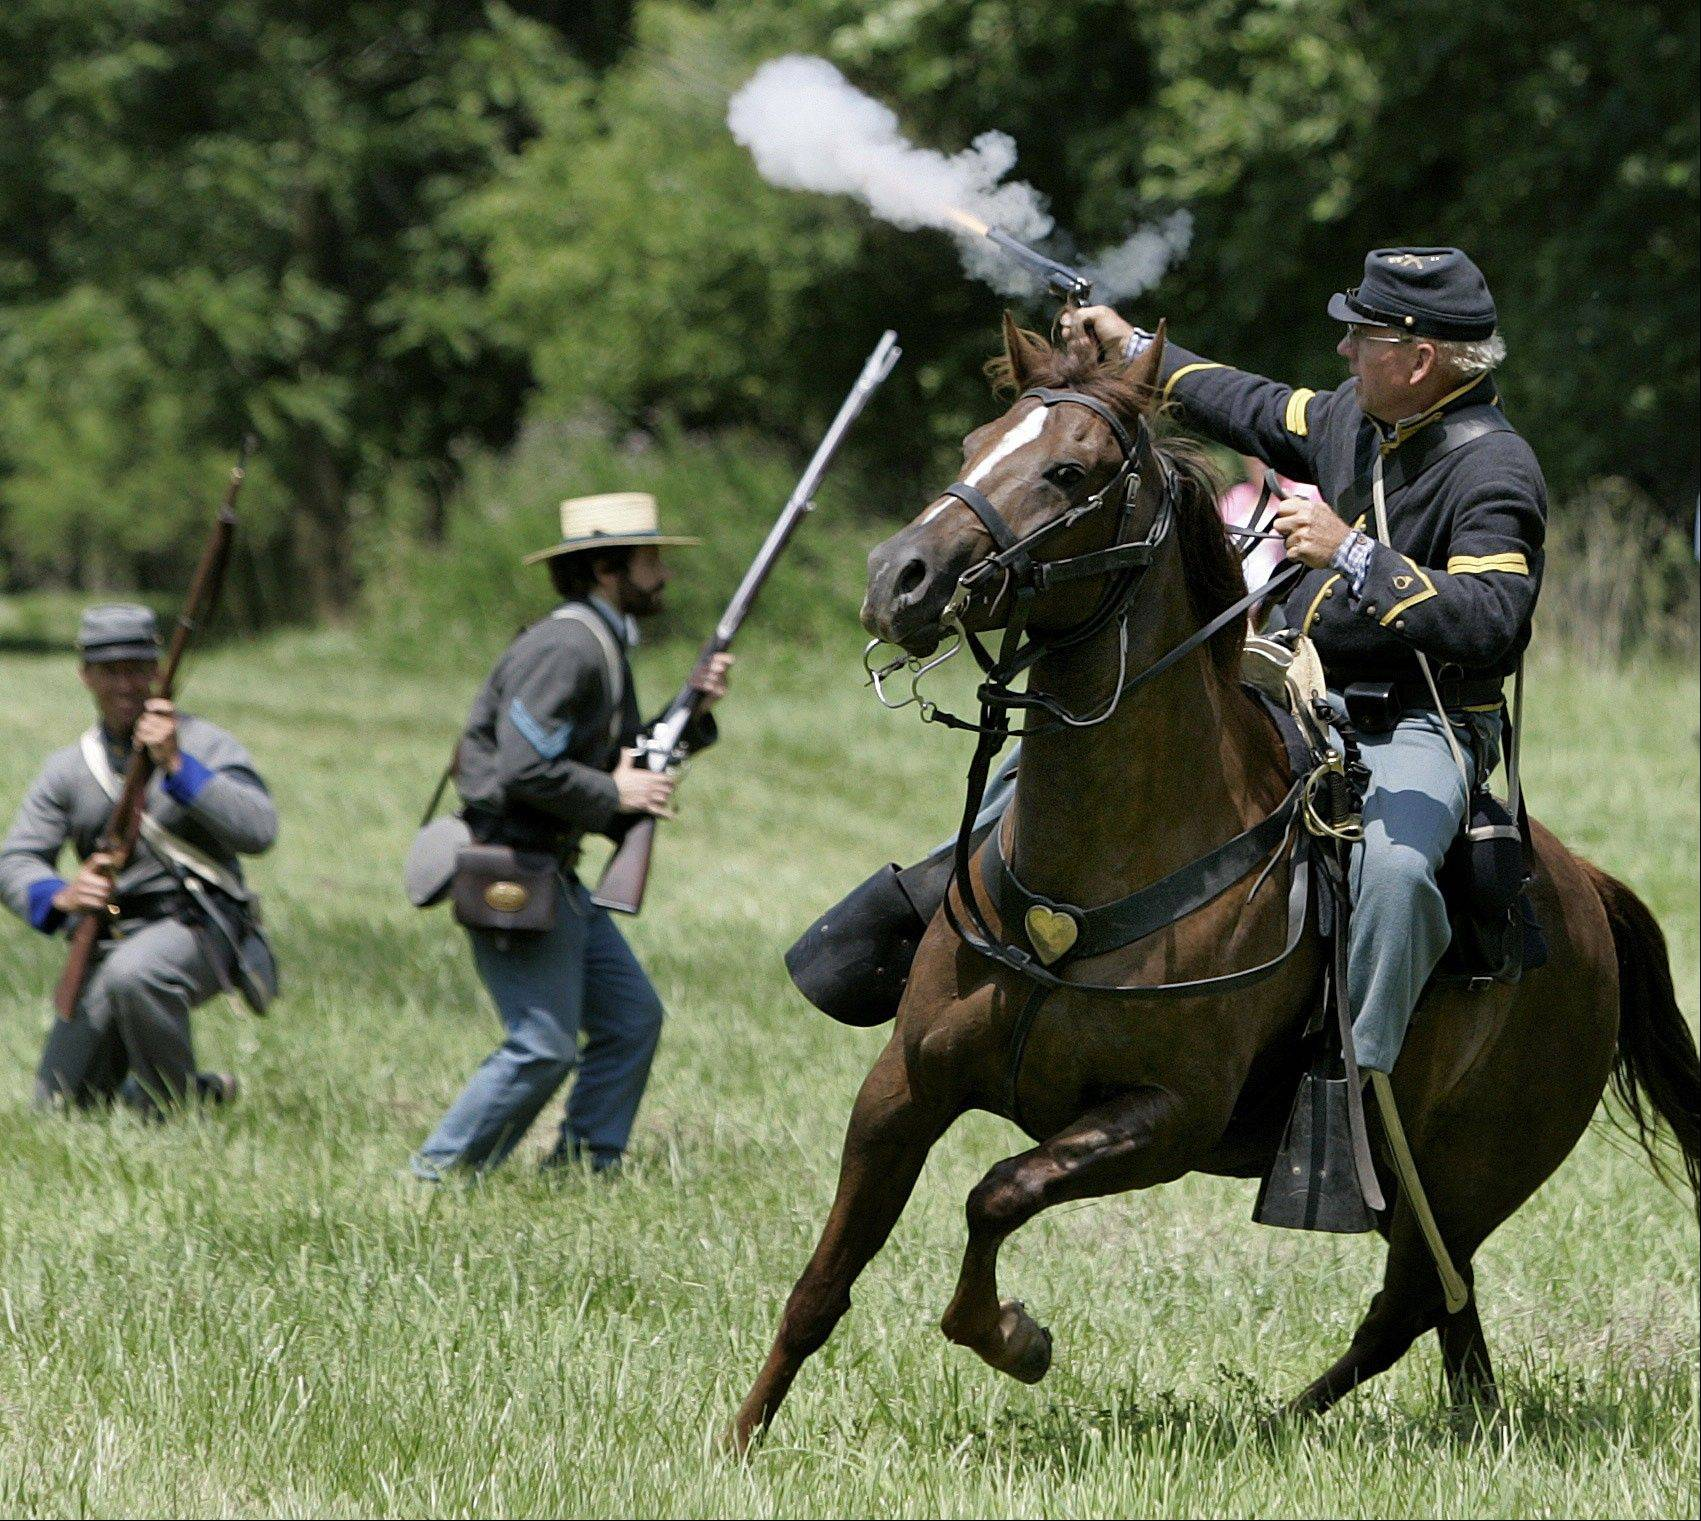 Watch authentic Civil War battle re-enactments at the annual Civil War Days at the Lakewood Forest Preserve in Wauconda.